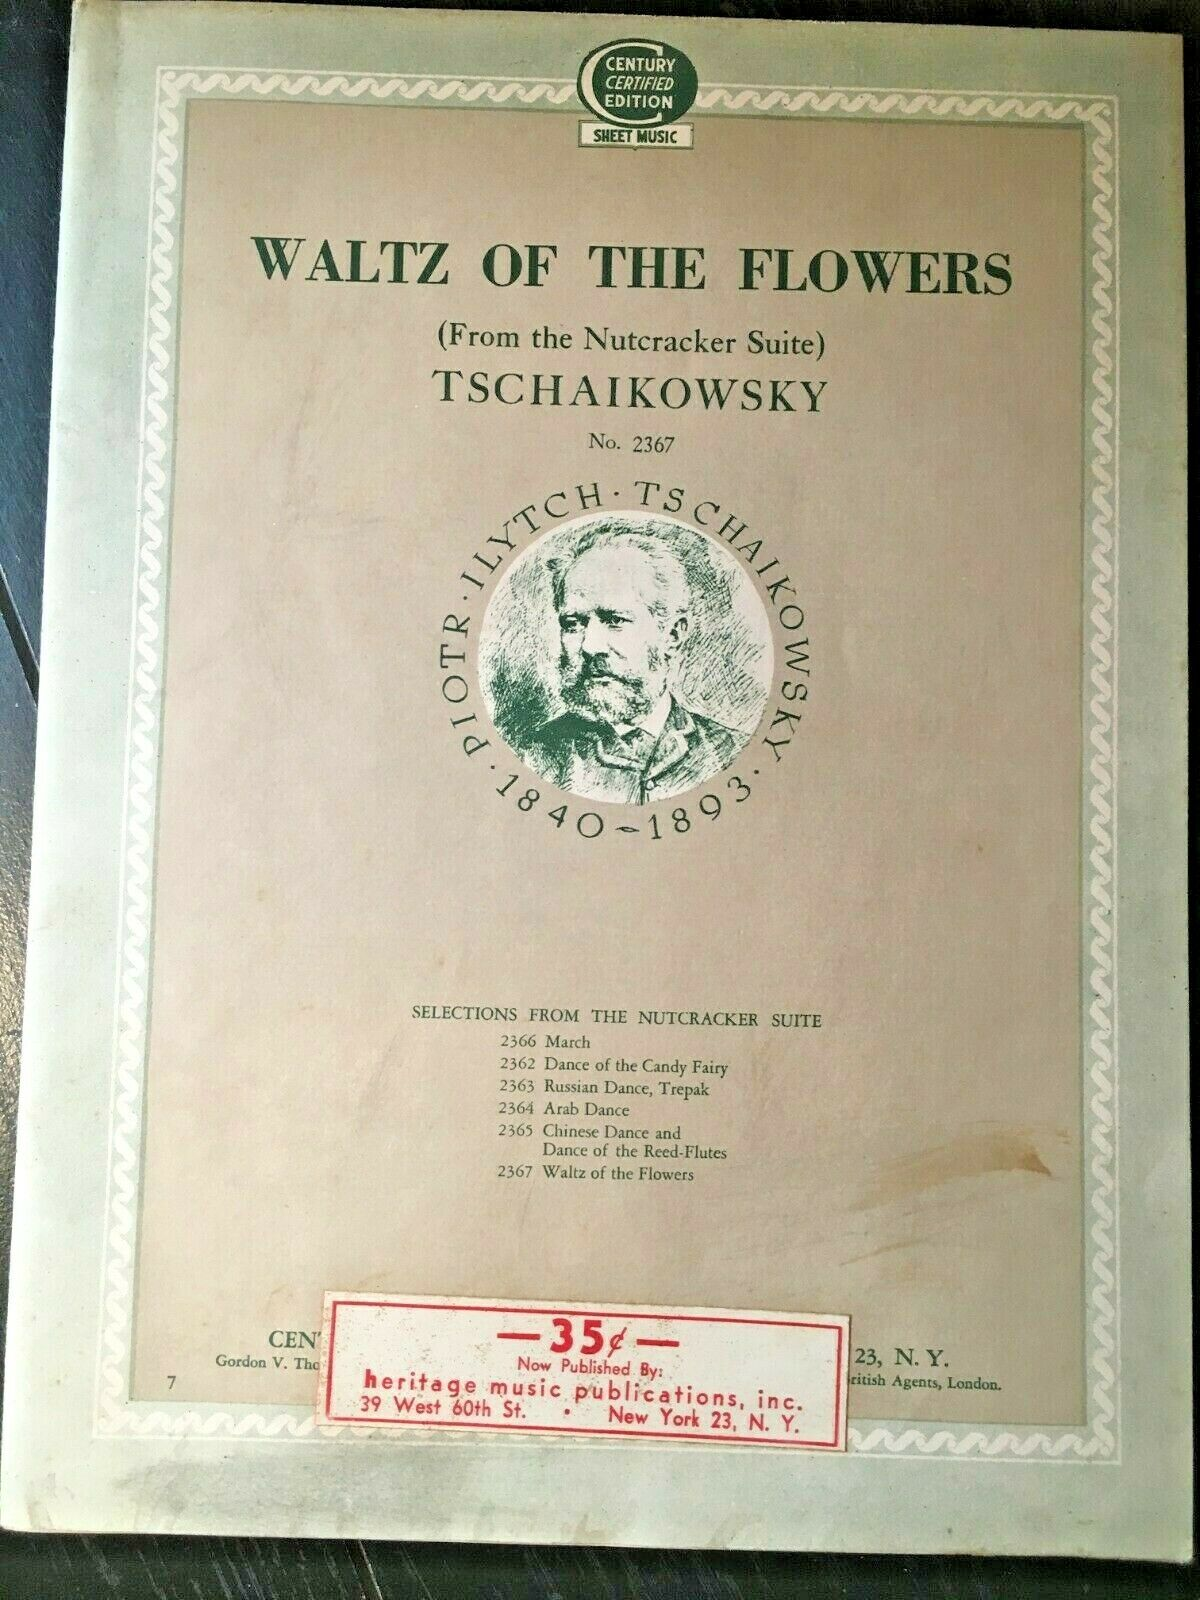 Waltz Of The Flowers from Nutcracker Suite Tschaikowsky 1925 - Sheet Music - $1.99